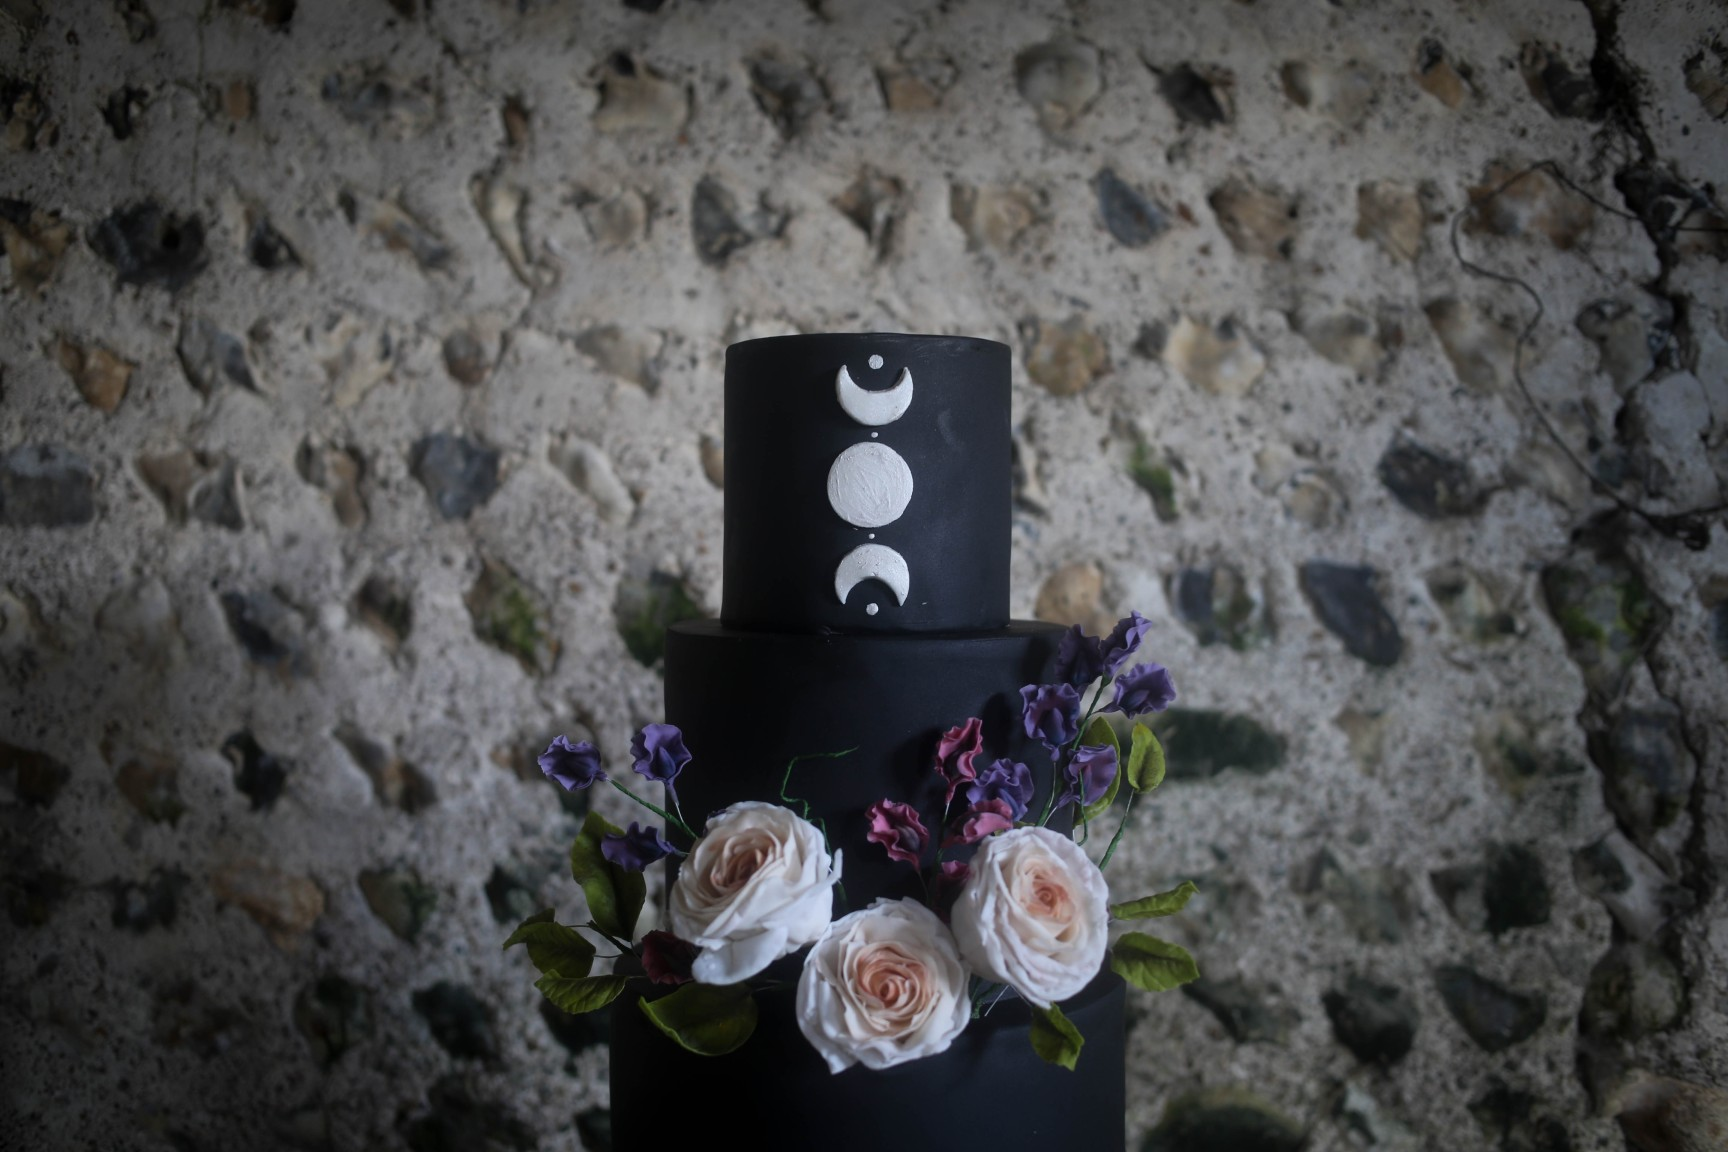 nature wedding - pagan wedding - ethereal wedding - spiritual wedding - alternative wedding - mystical wedding - quirky wedding - triple goddess wedding cake - black wedding cake - pagan wedding cake